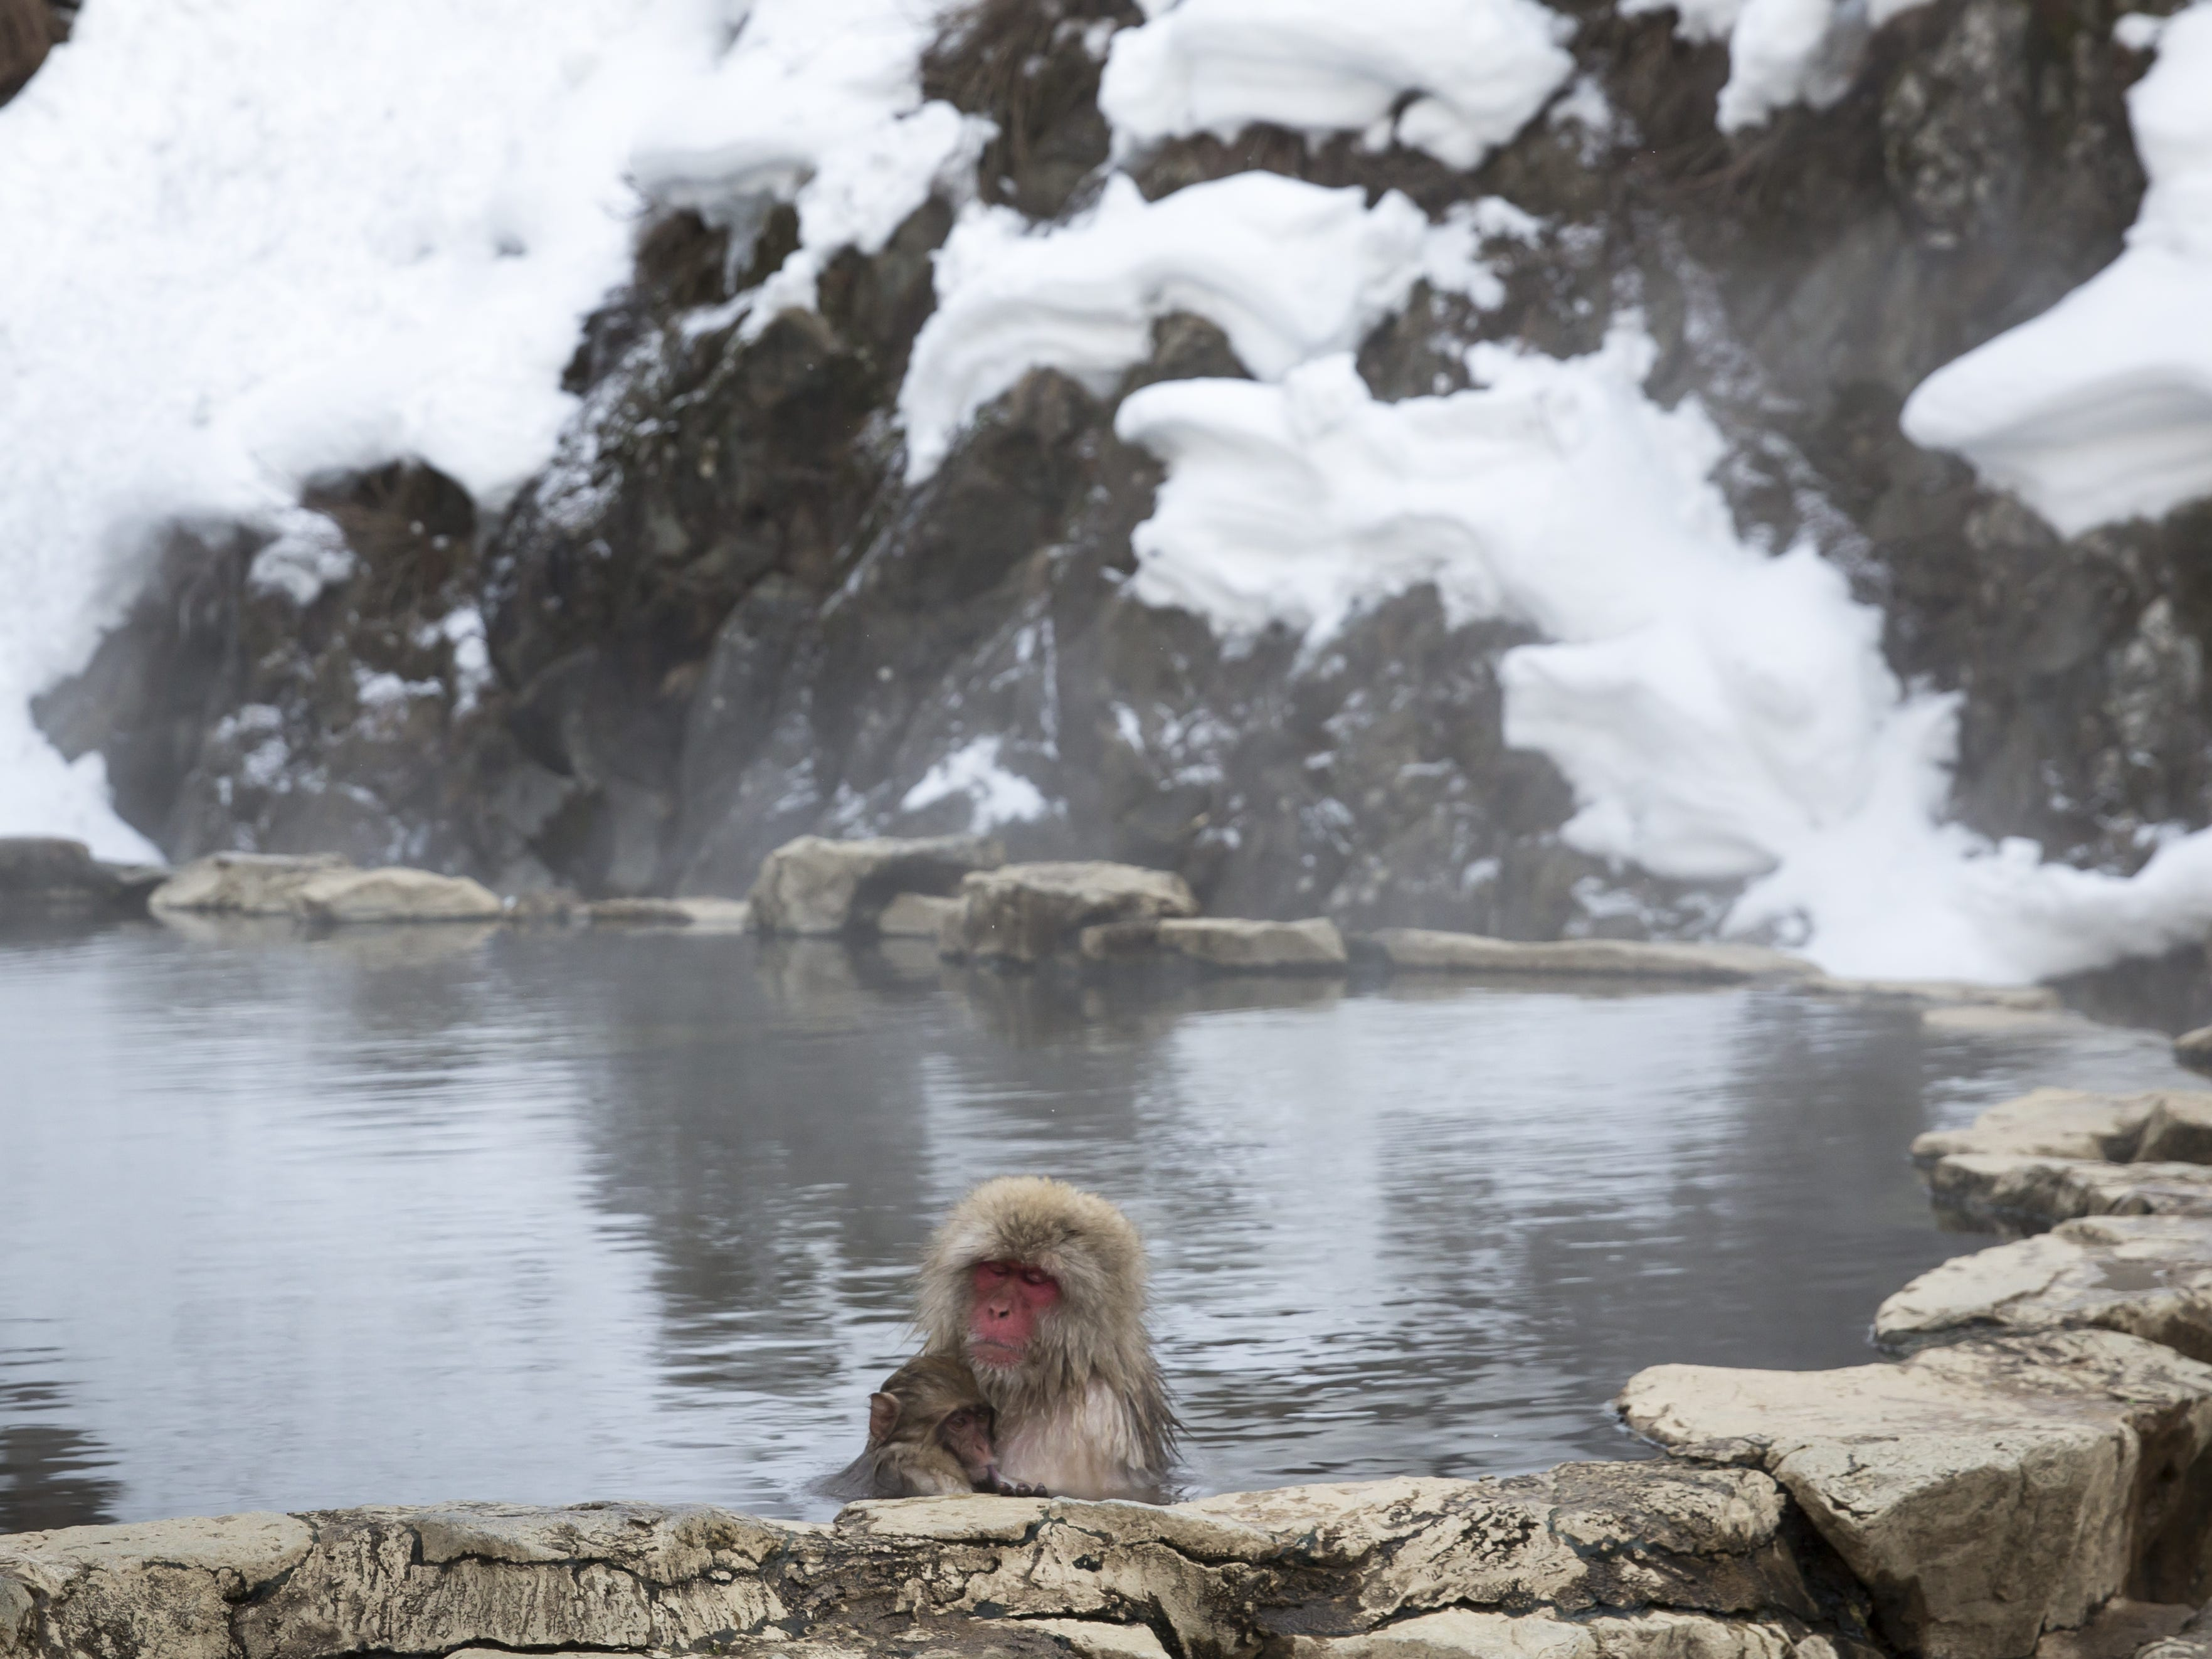 YAMANOUCHI, JAPAN - FEBRUARY 08: Macaque monkeys bathe in a hot spring at the Jigokudani Yaen-koen wild Macaque monkey park on February 8, 2019 in Yamanouchi, Japan. The wild Japanese macaques are known as snow monkeys, according to the park's official website. (Photo by Tomohiro Ohsumi/Getty Images) ORG XMIT: 775292339 ORIG FILE ID: 1128215788